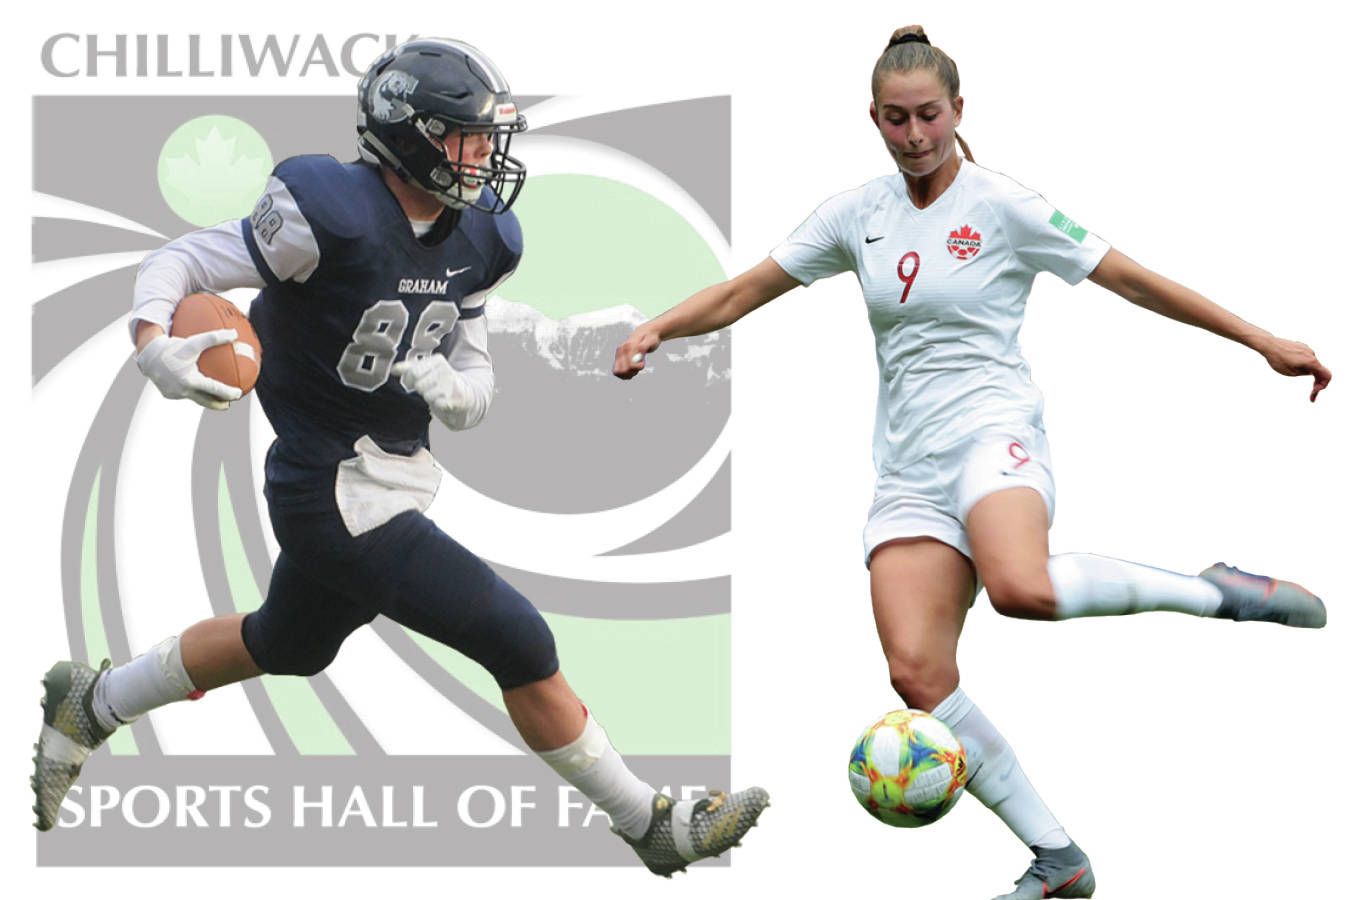 Chilliwack Sports Hall of Fame launches new awards